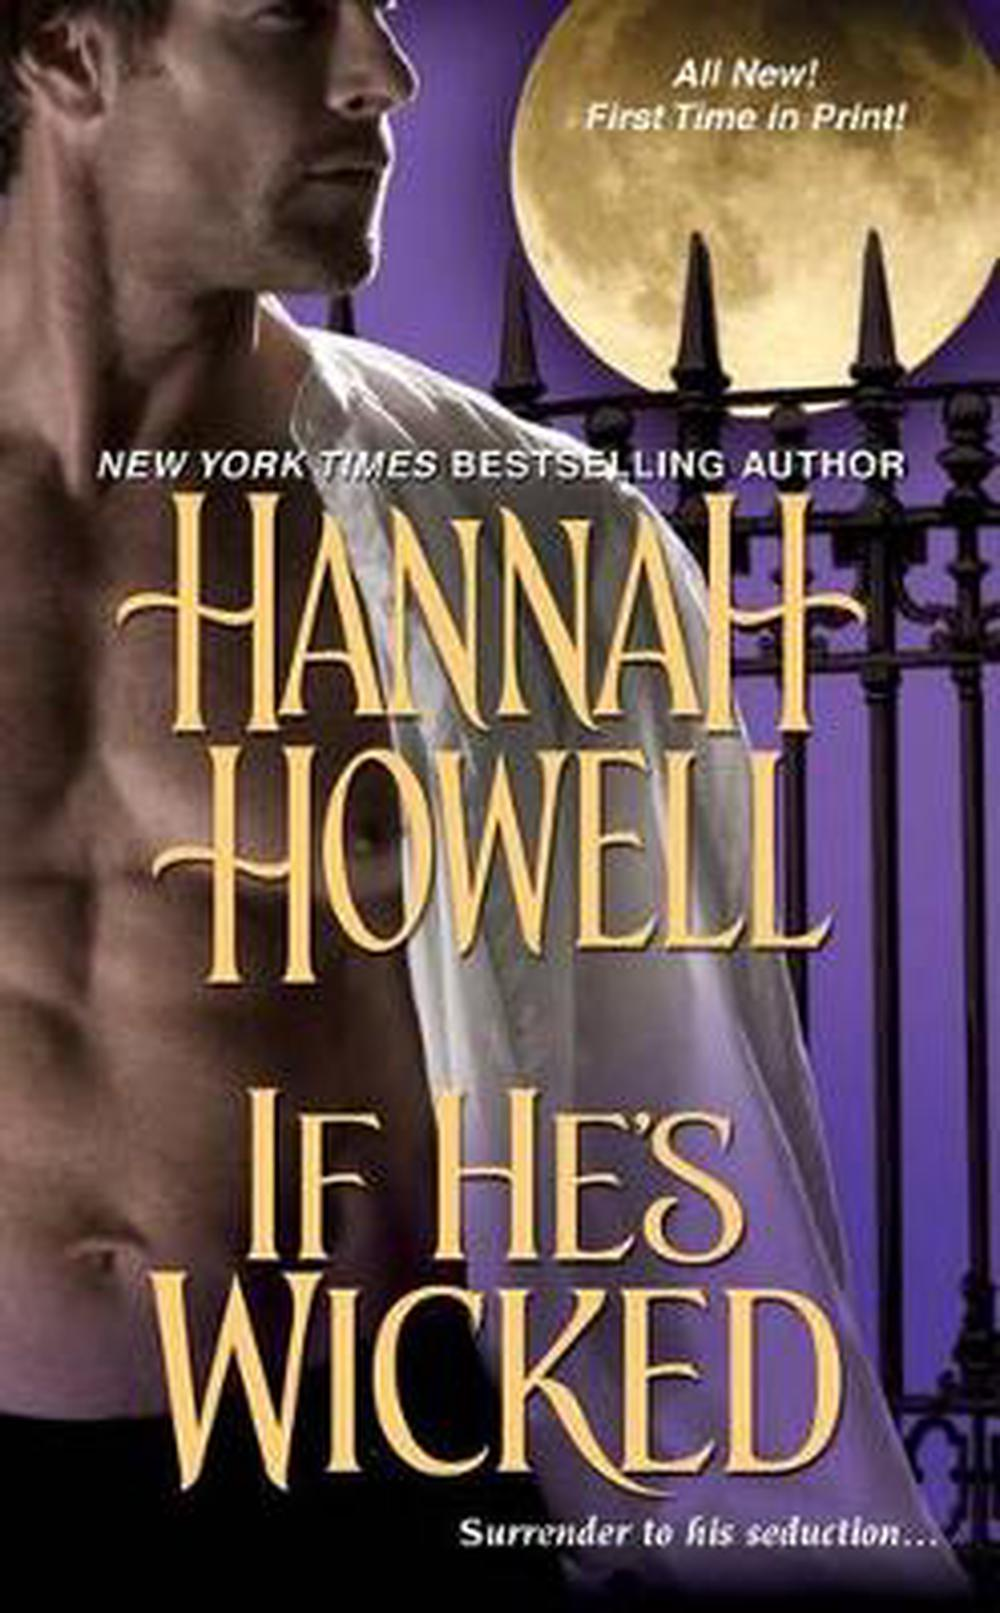 If He's Wicked by Hannah Howell, Mass Market Paperback